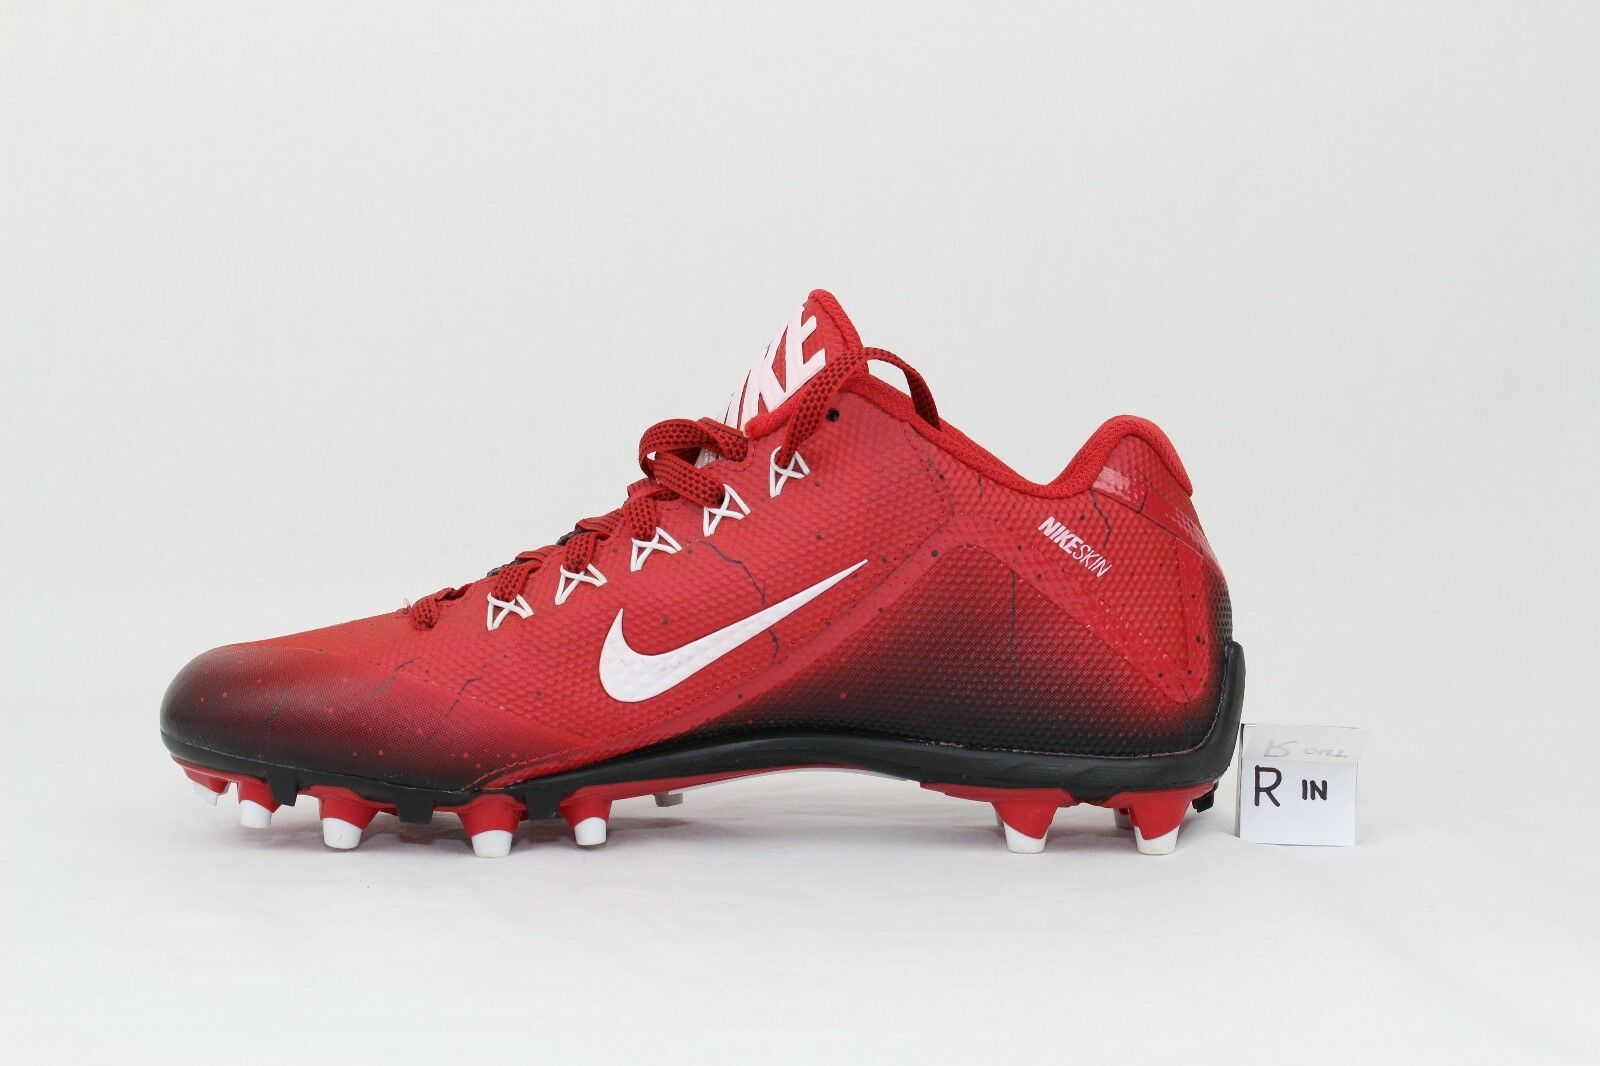 cb9ed7b2fa5 ... NIKE Alpha Pro Pro Pro 2 Low Red White Molded Football Cleats Men s  Sz10 made in ...